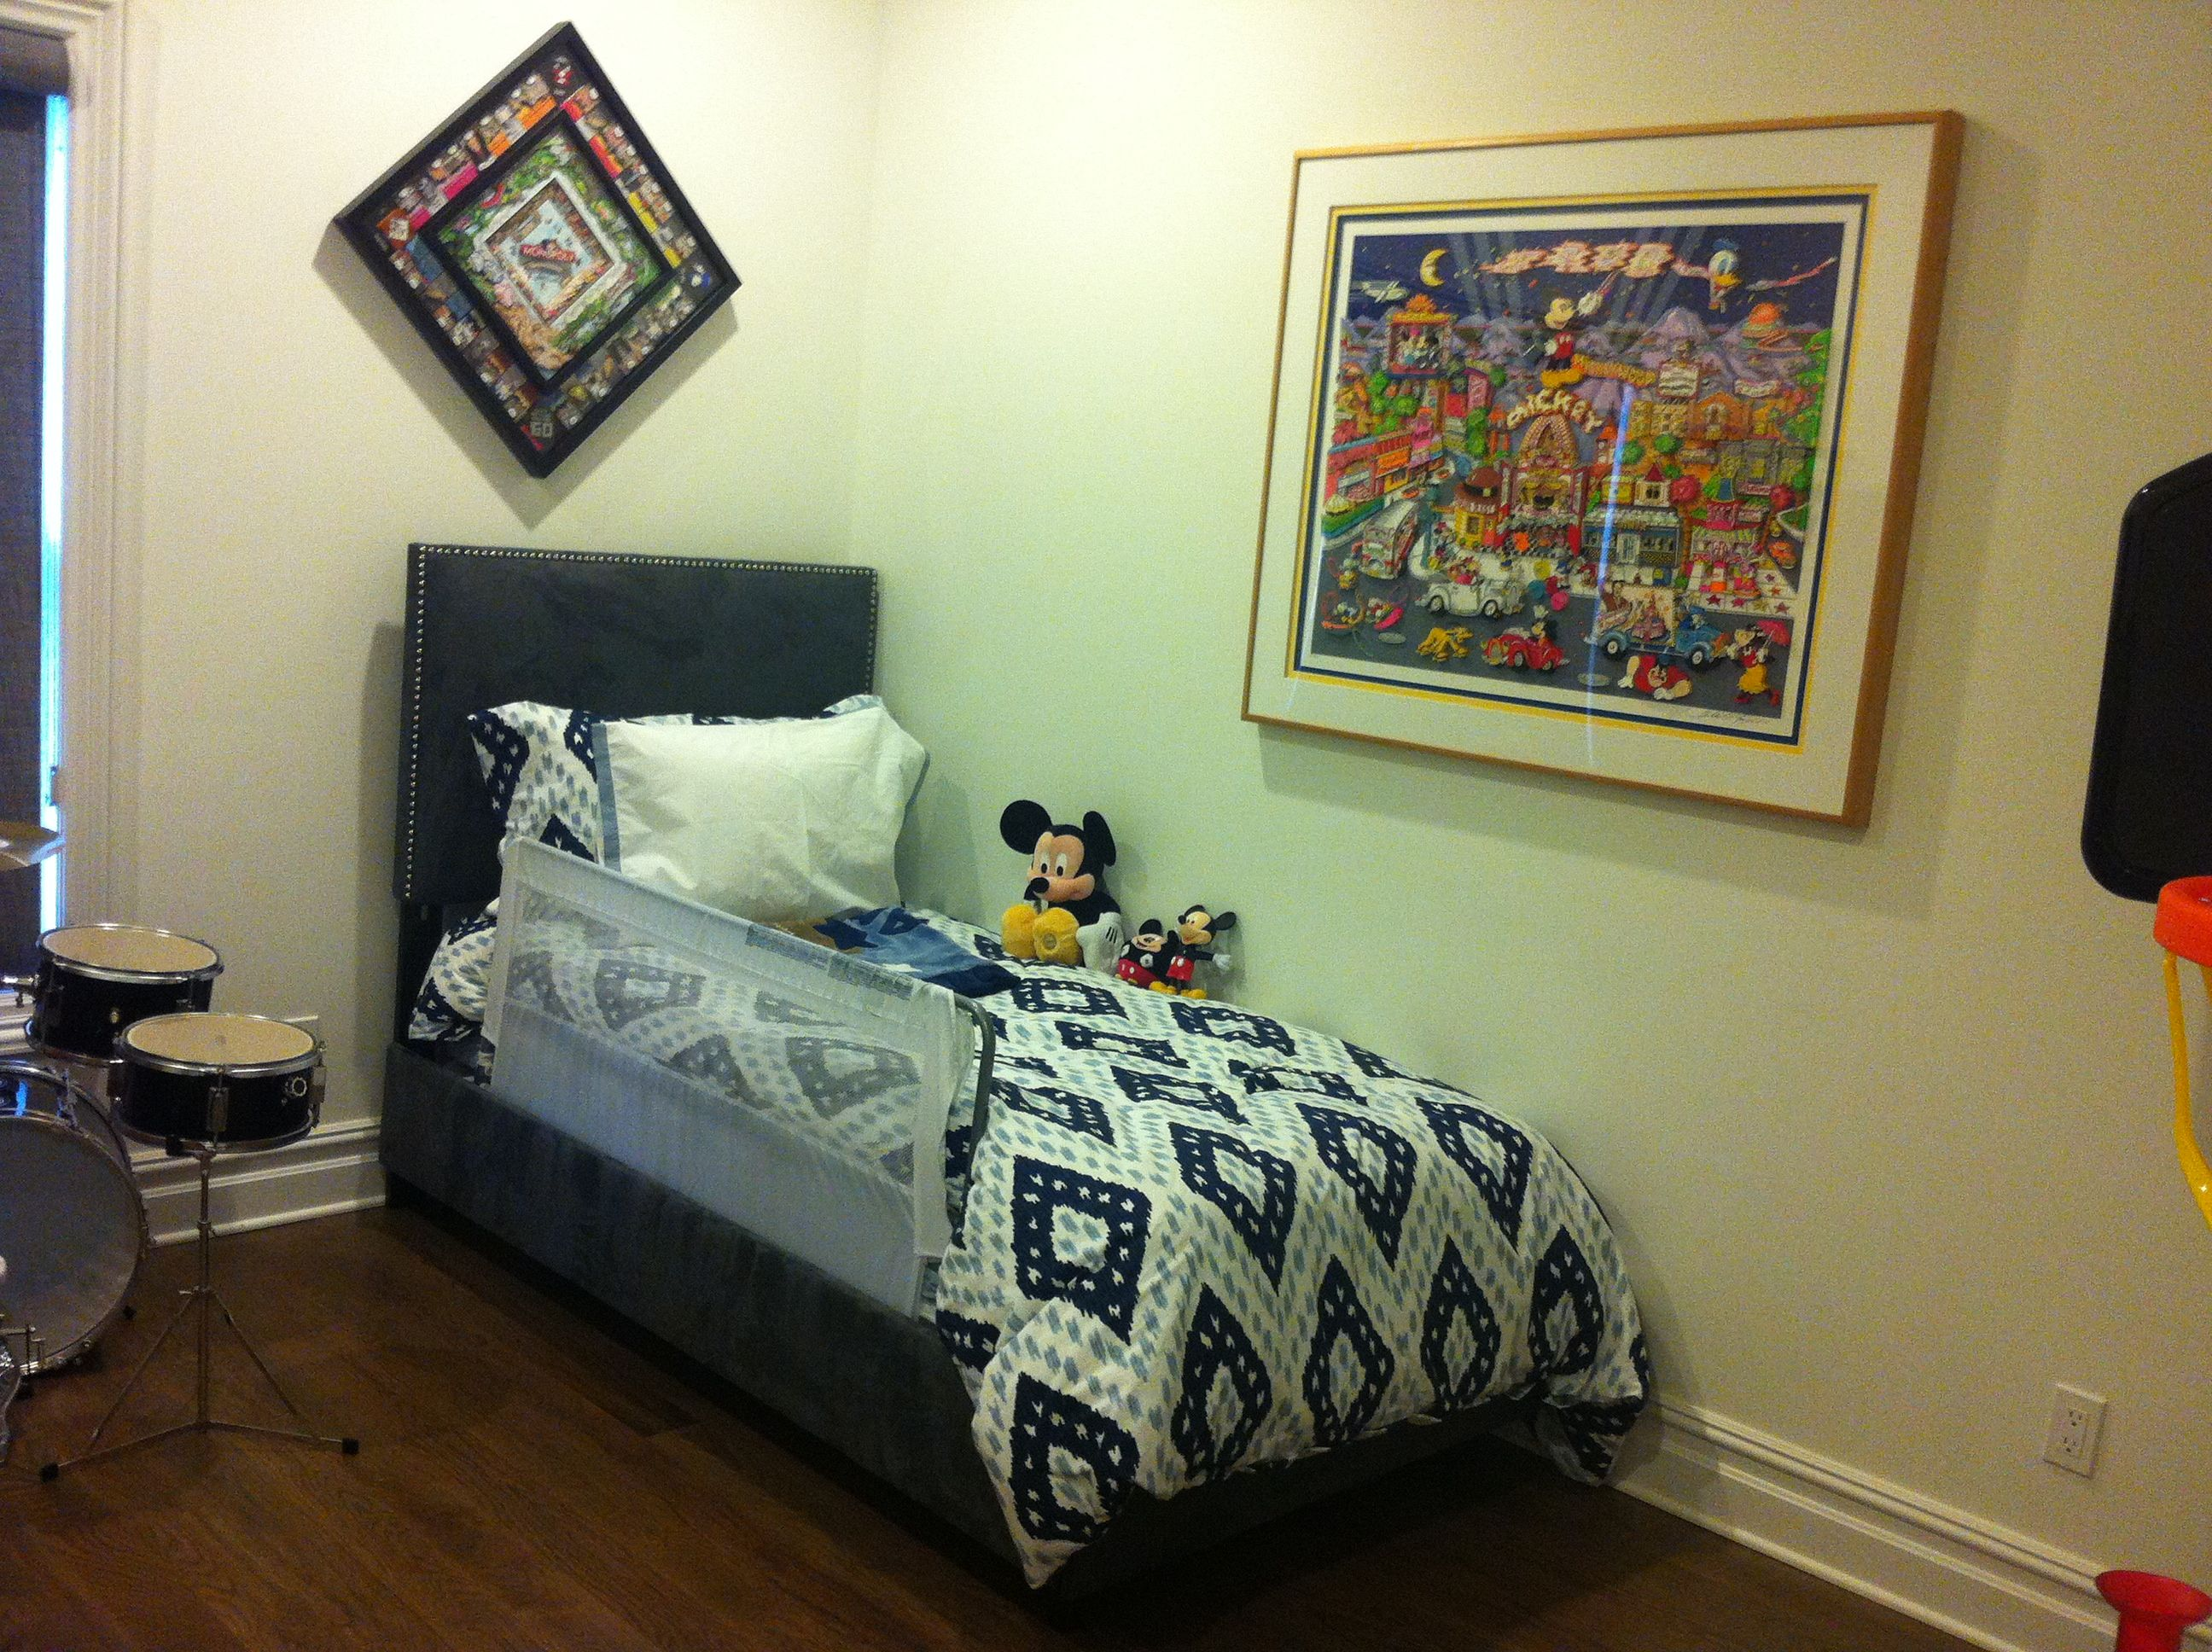 Professional picture hanging service custom framing by central professional picture hanging service custom framing by central galleries in cedarhurst ny 516 569 jeuxipadfo Image collections